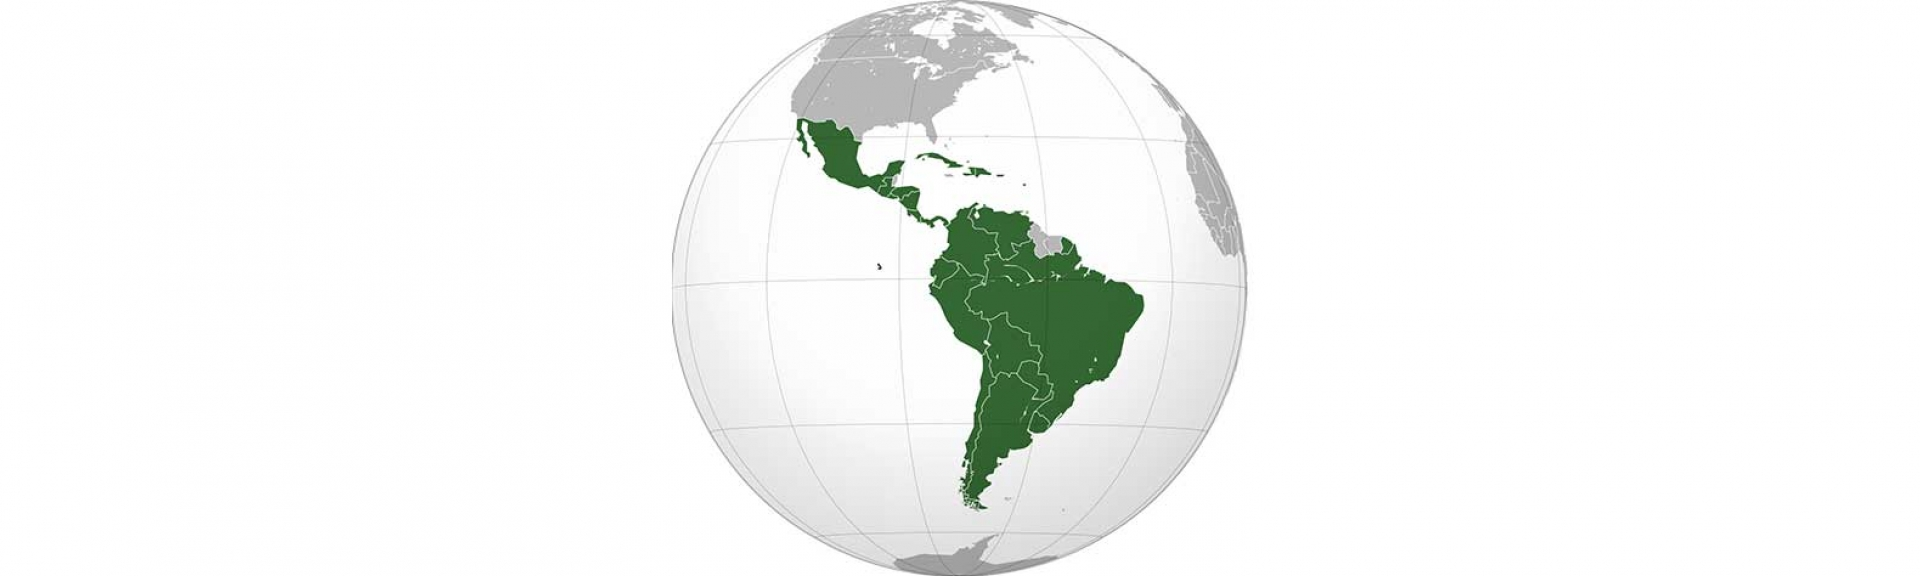 Acmon Systems keeps expanding In Latin America